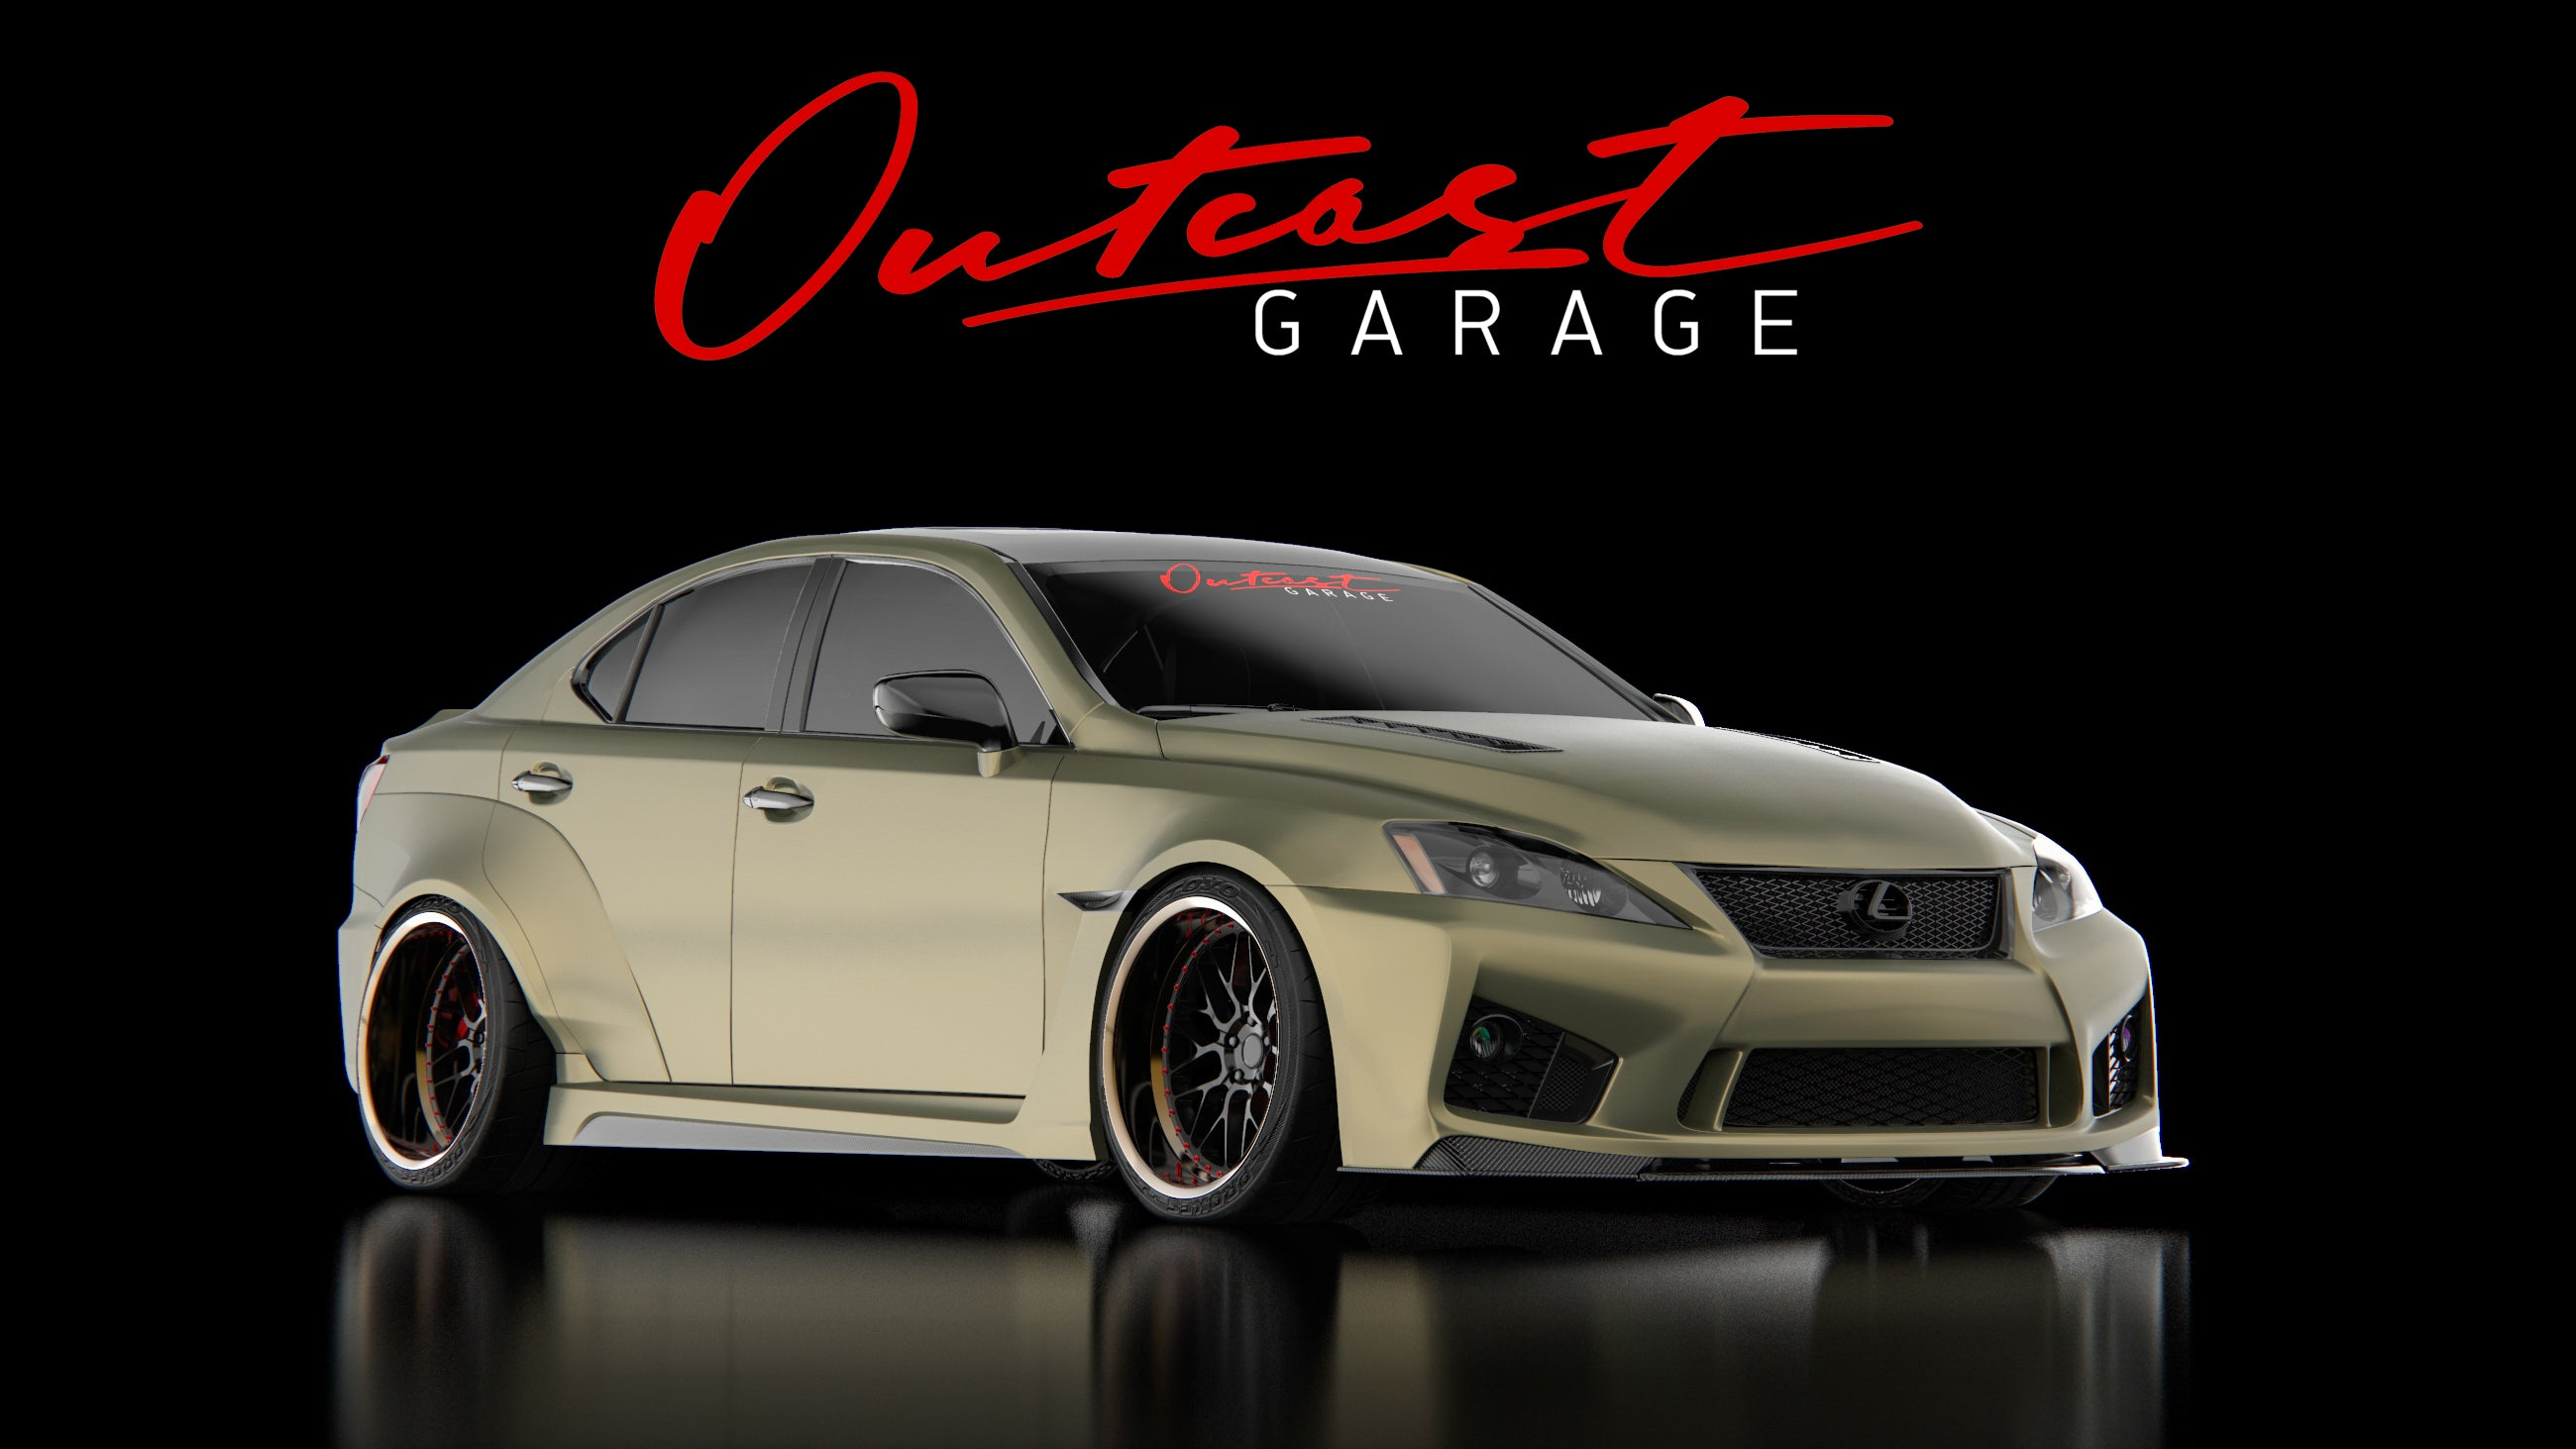 Outcast Garage Widebody Lexus ISF Build